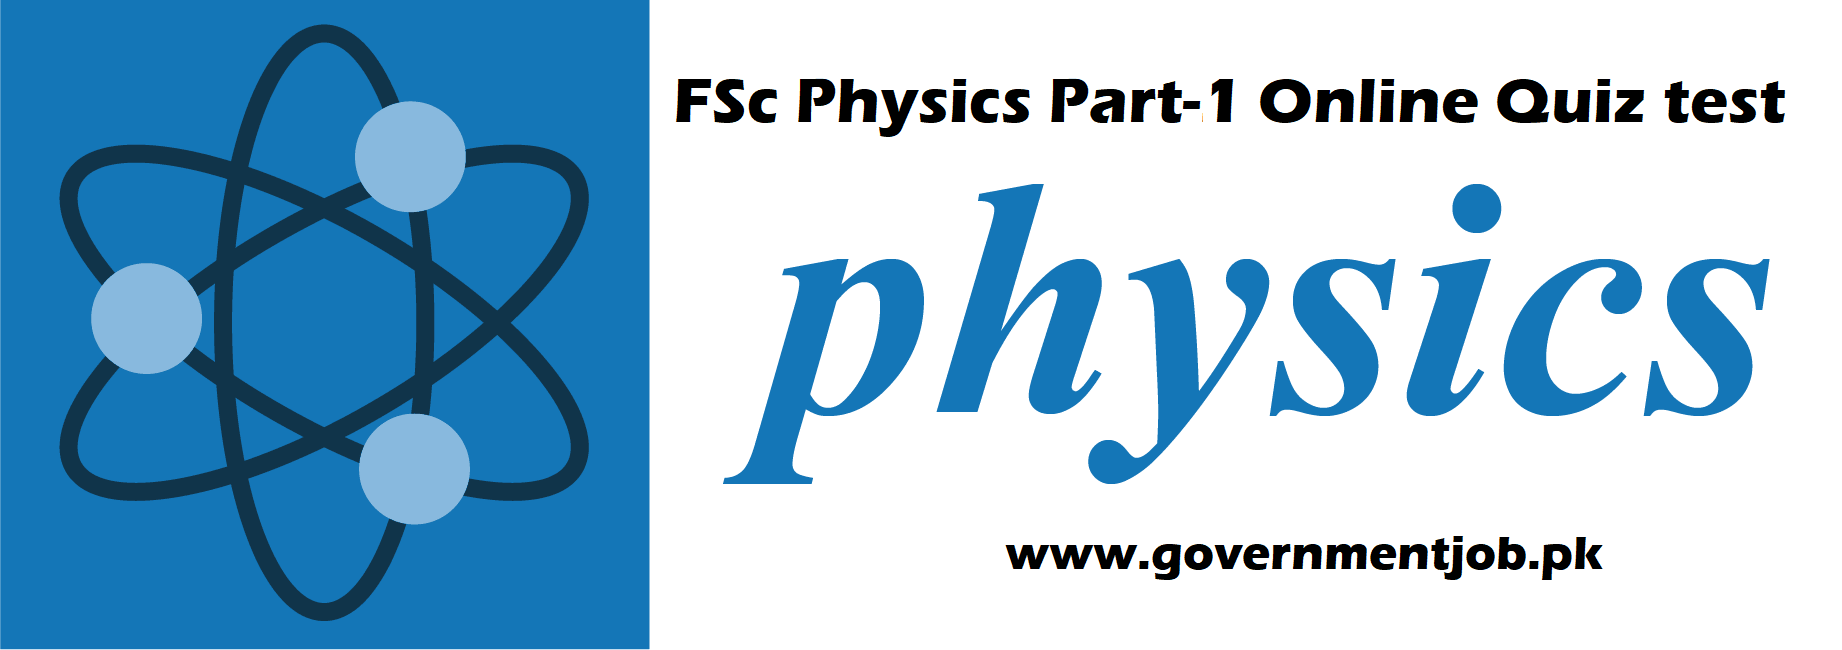 FSc physics Part 1 online test